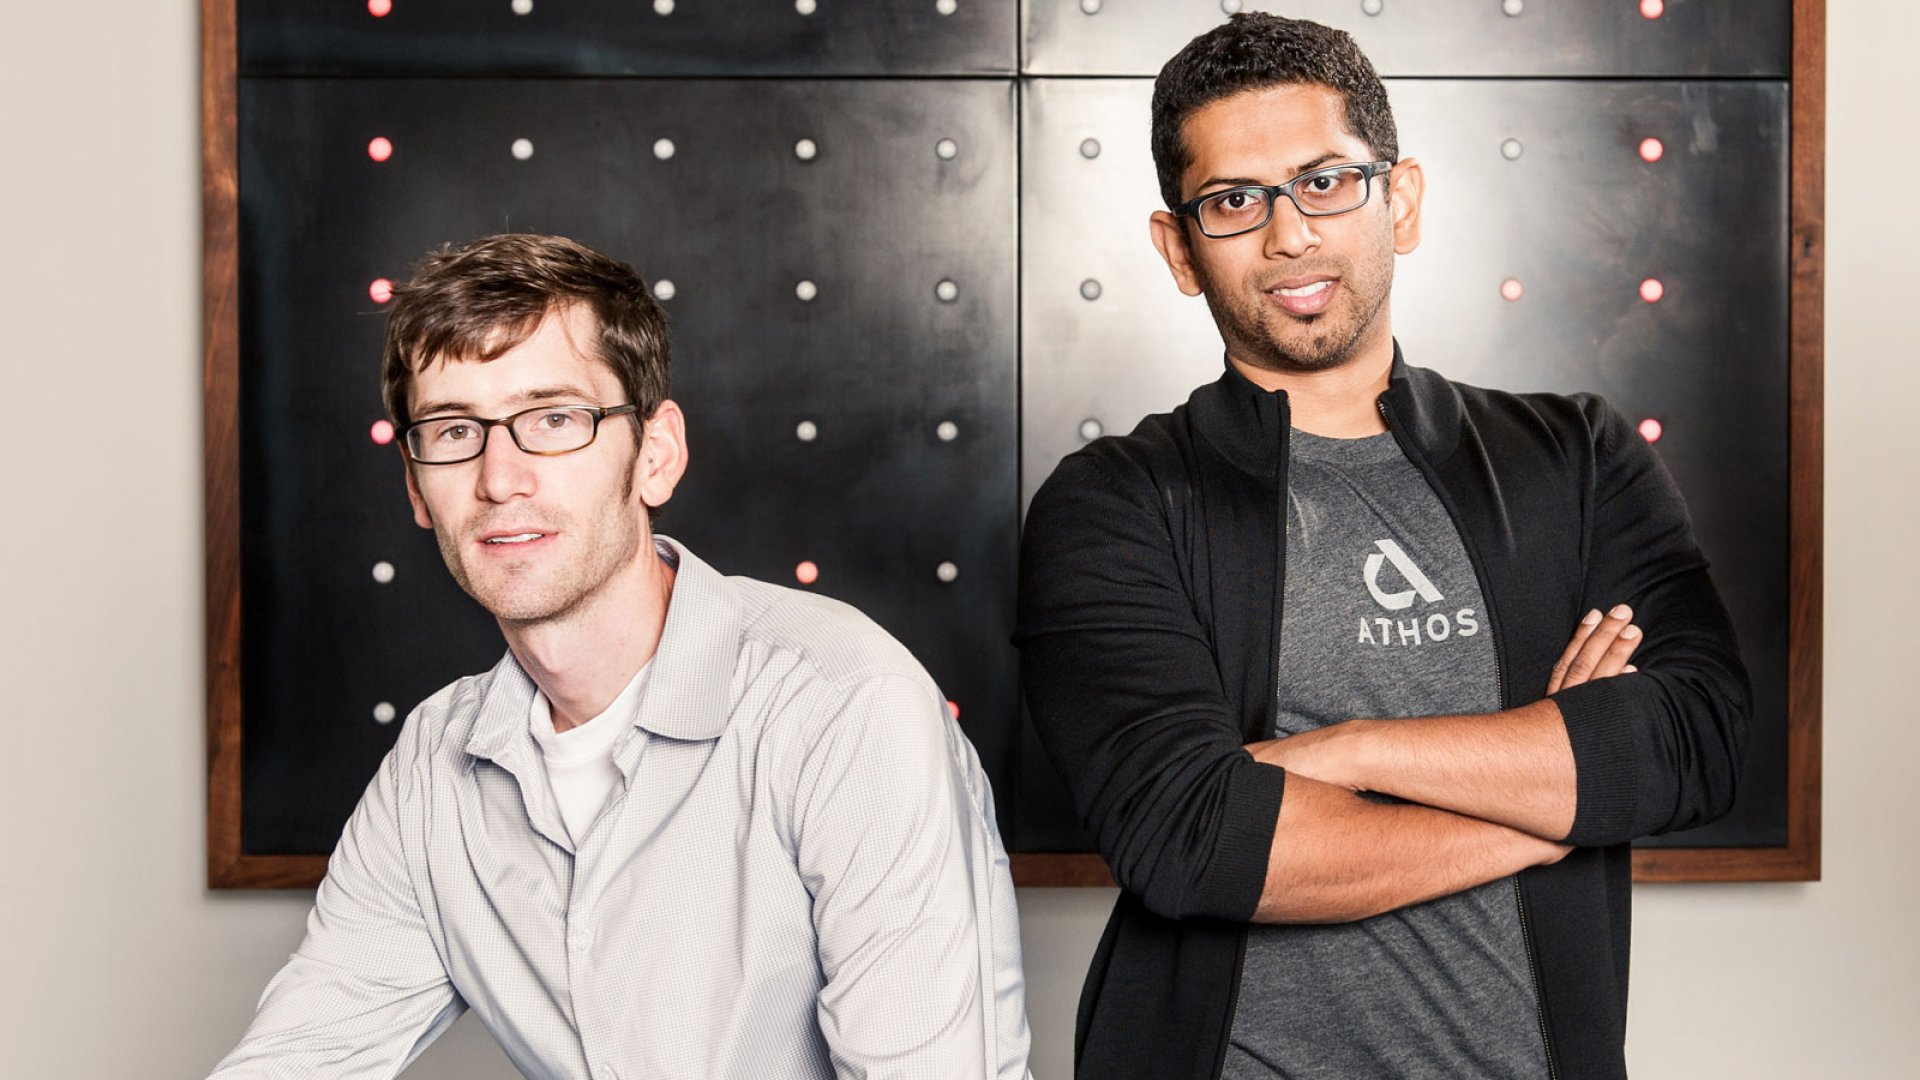 Christopher Wiebe and Dhananja Jayalath are the co-founders of Athos.